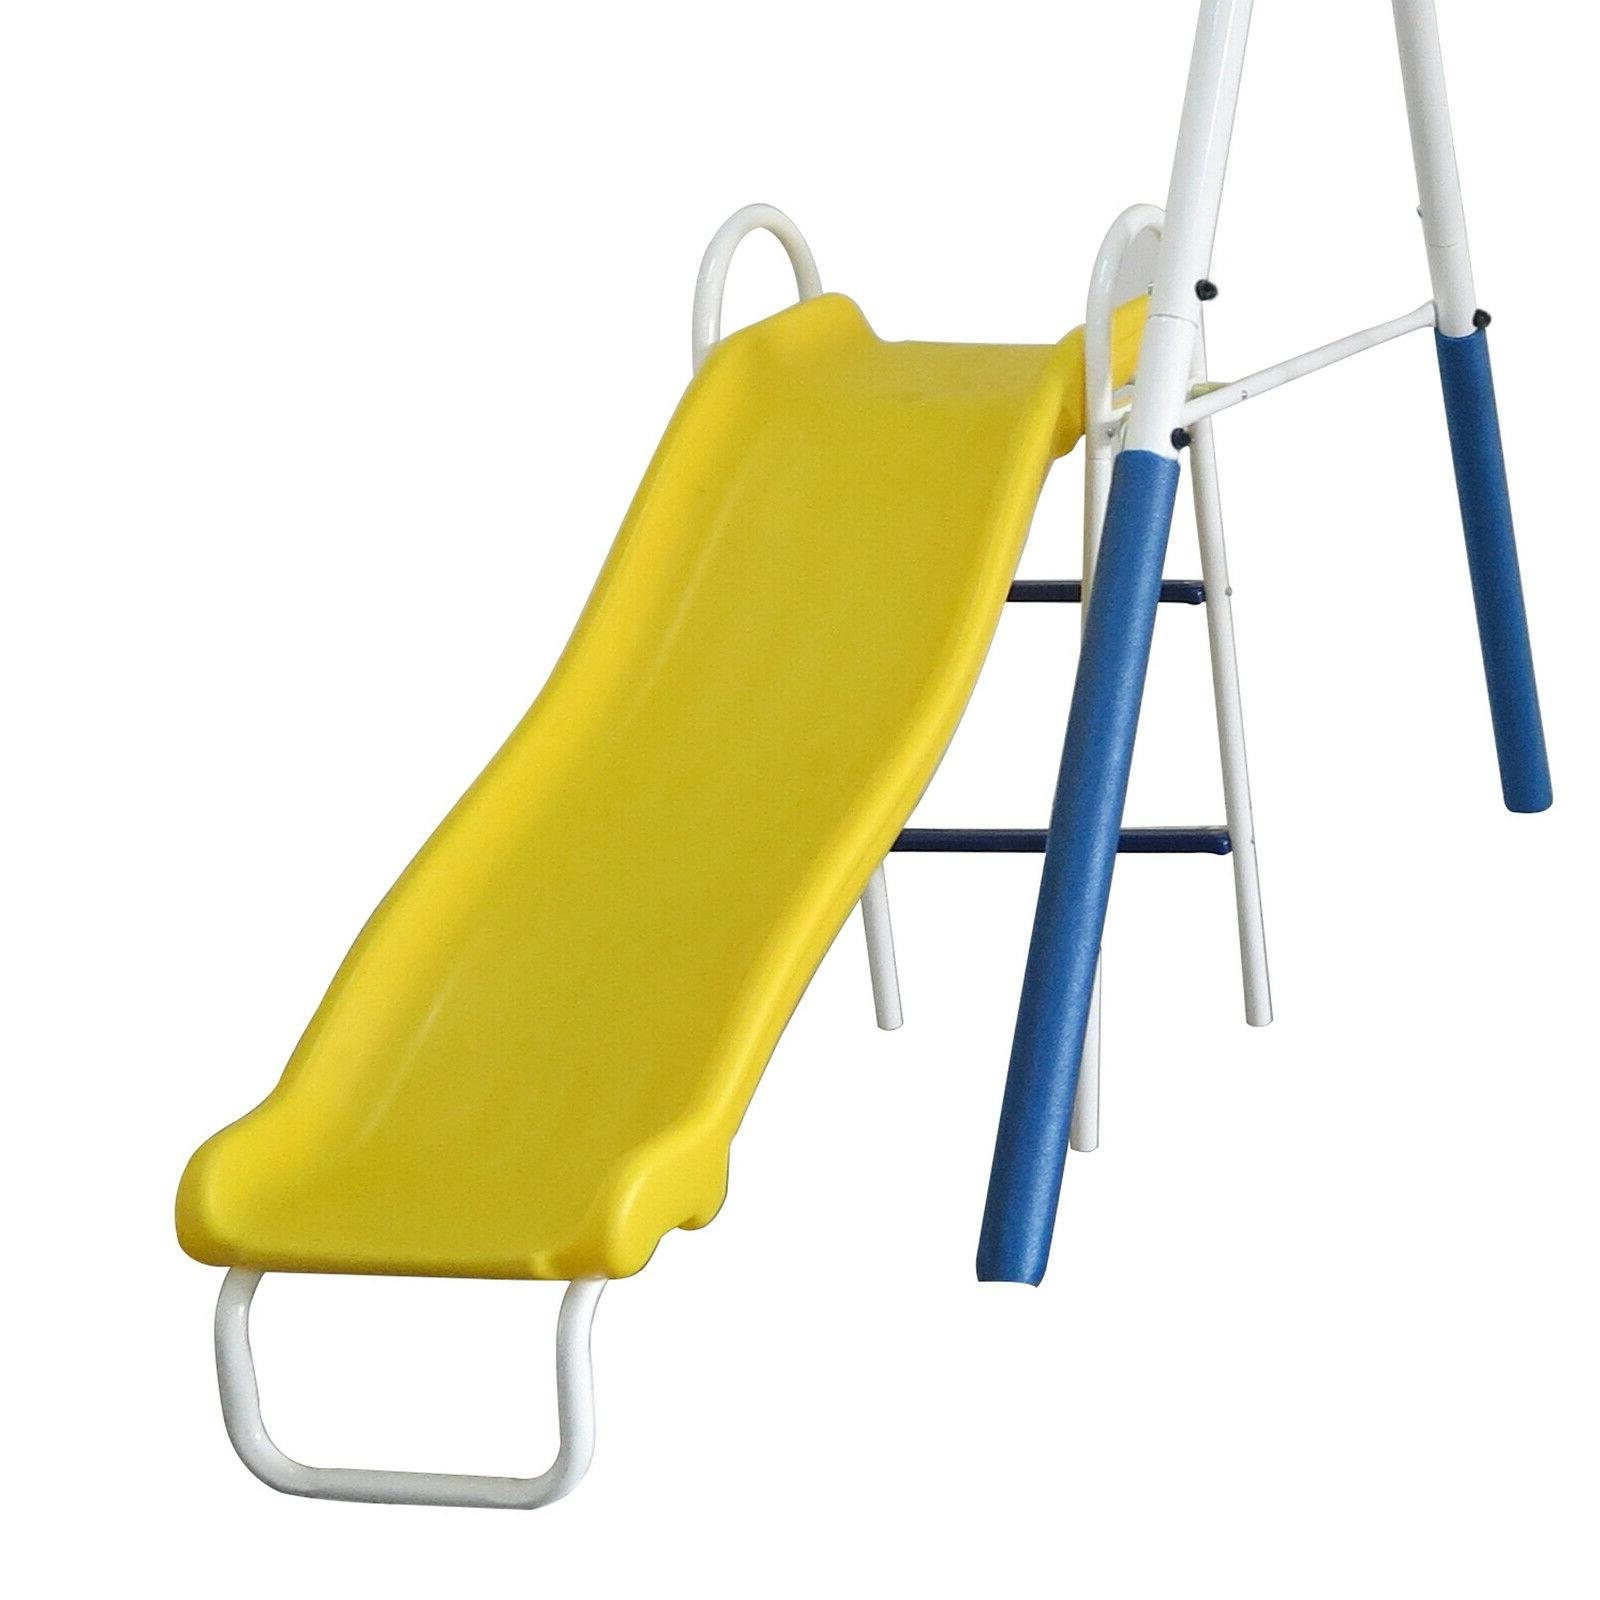 Swing Metal Swingset Metal Playground Outdoor Wave Slide